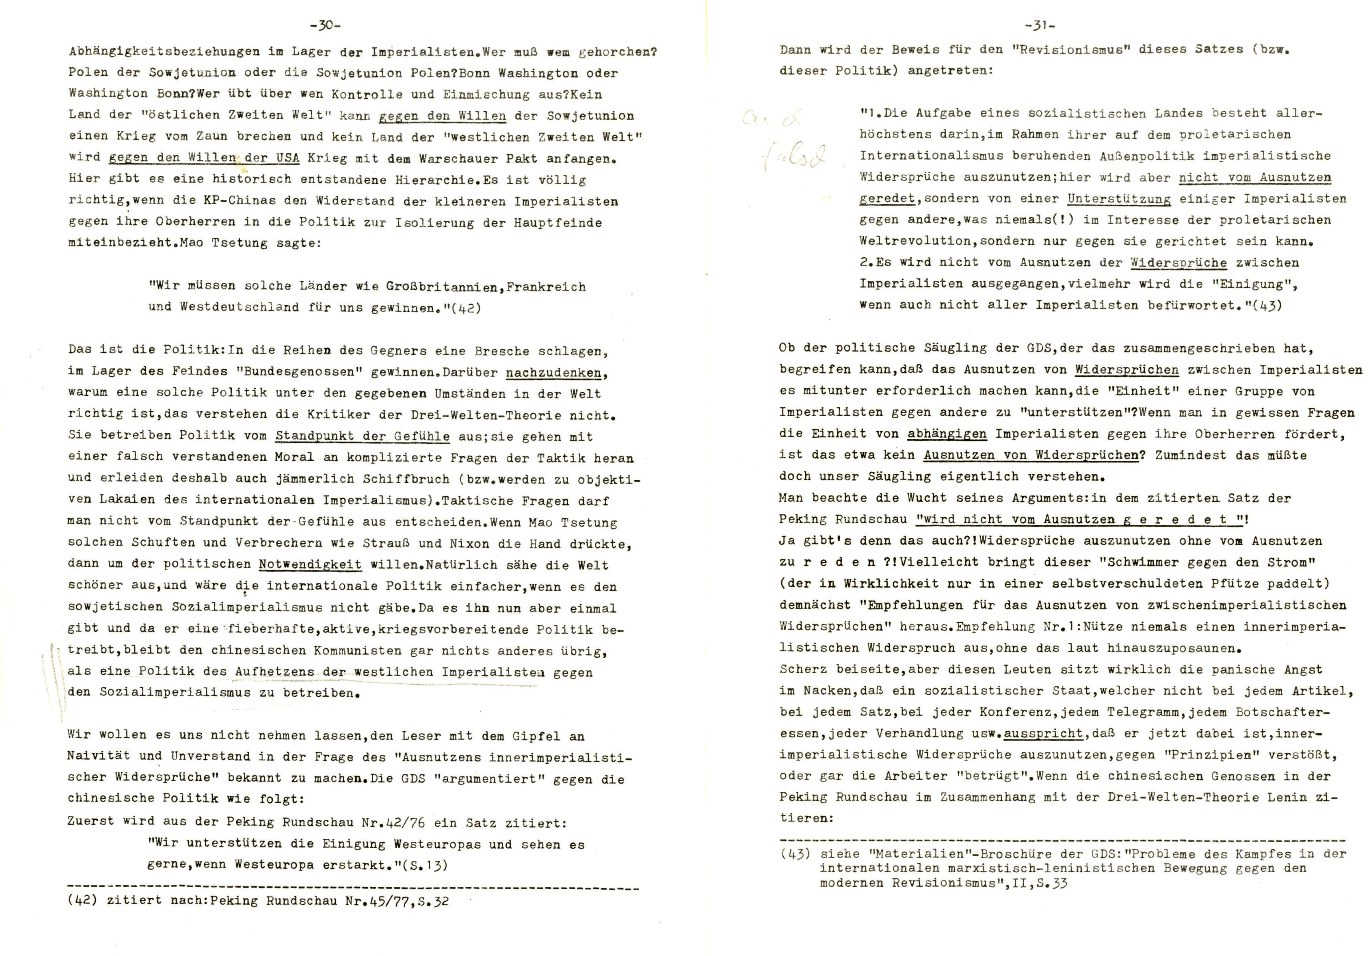 Muenchen_Kampf_dem_Revisionismus_1978_04_05_17